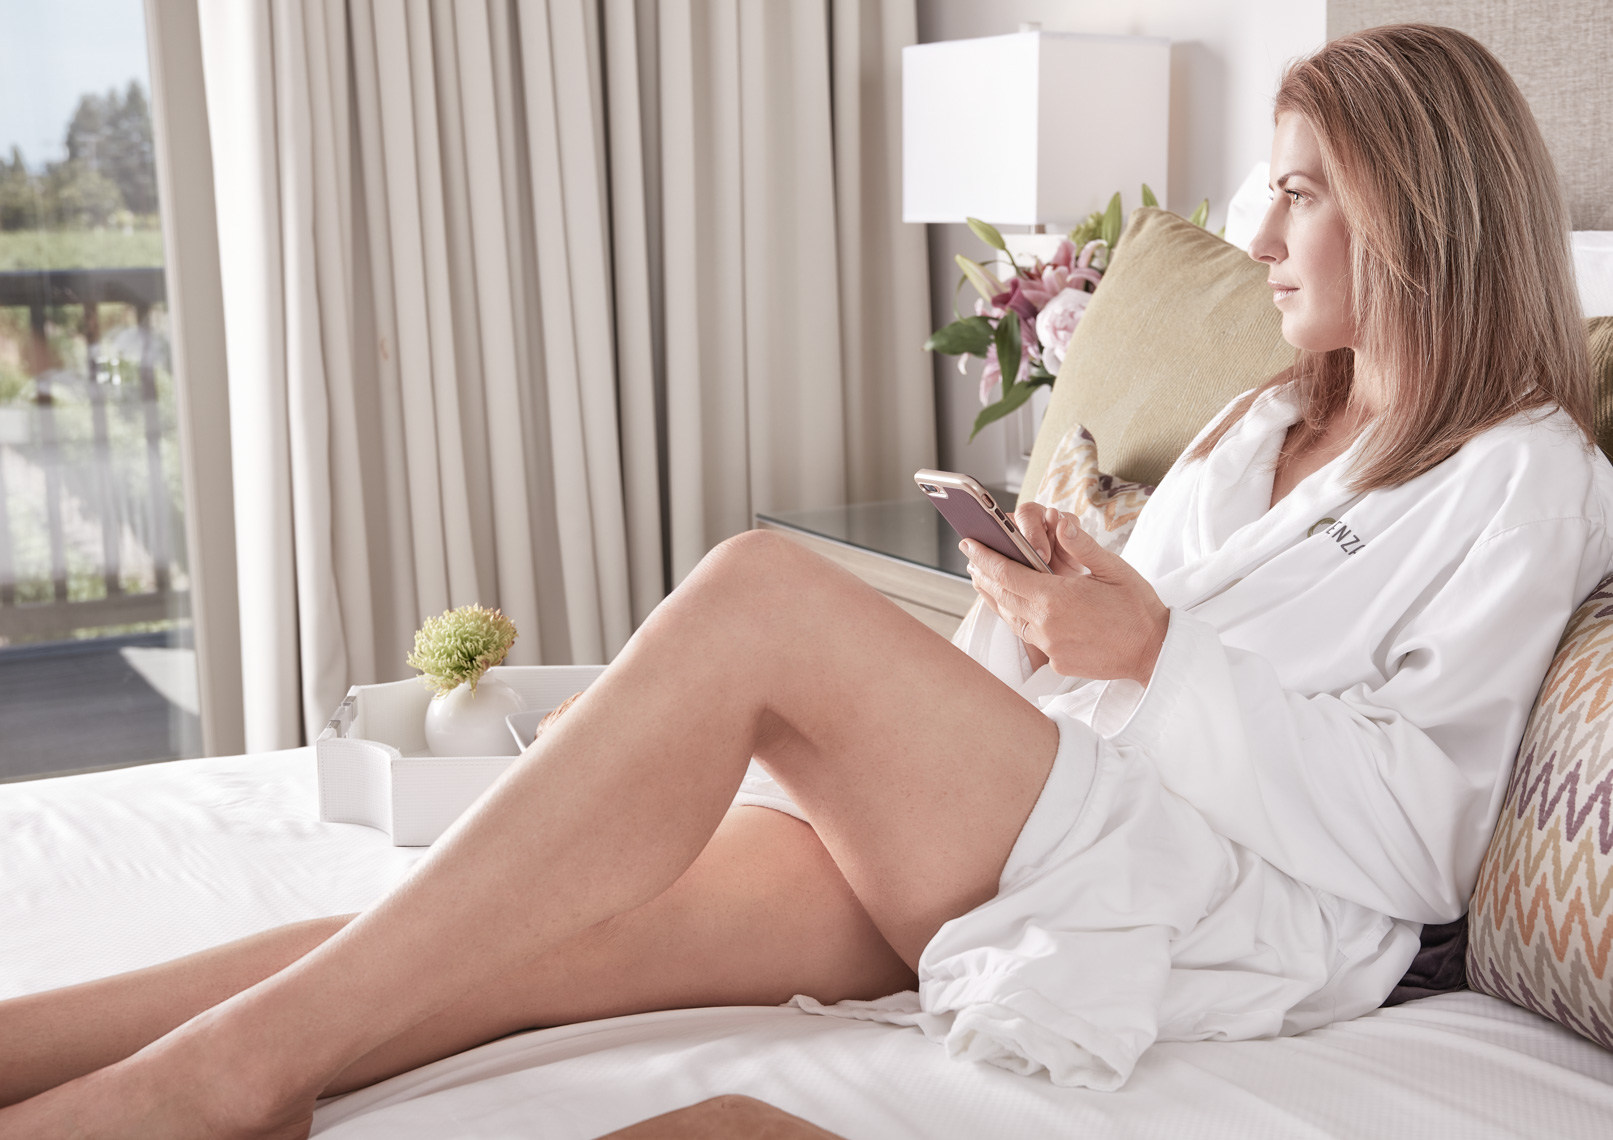 Woman in robe with bare legs reading smart phone in hotel bed in wine country San Francisco lifestyle photographer